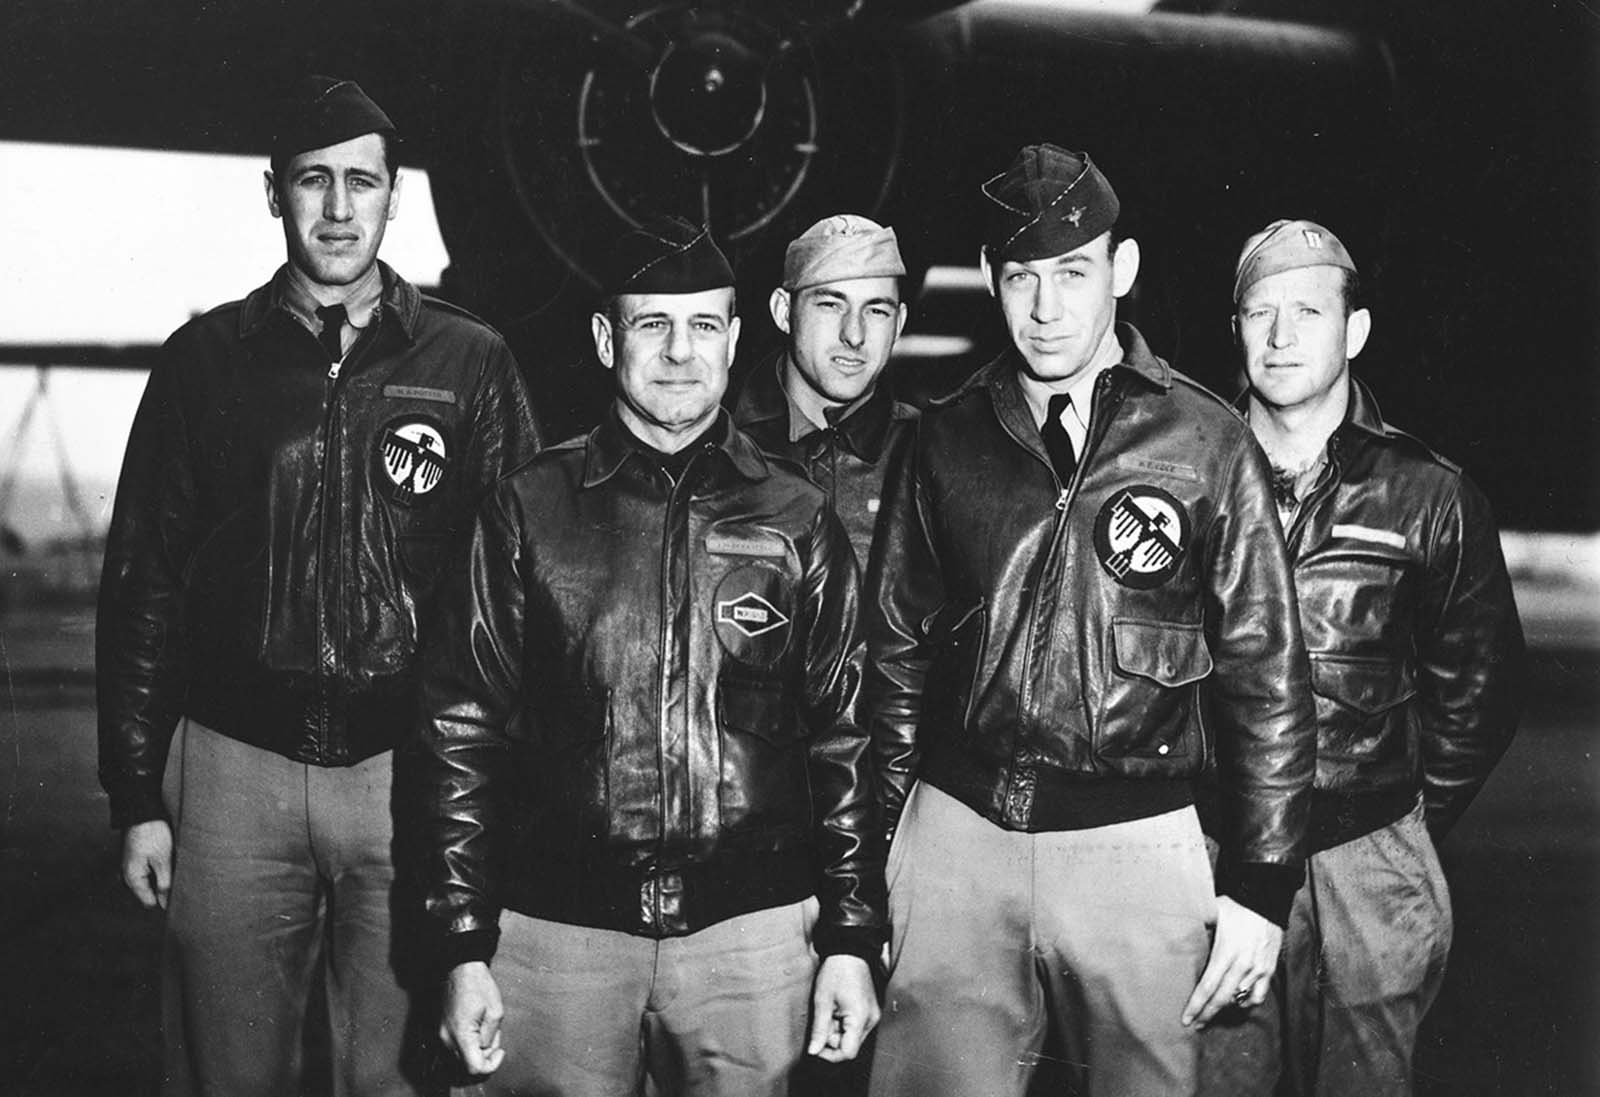 Posing in front of a bomber is Crew No. 1 of the Doolittle Raid, from the 34th Bombardment Squadron, Lt. Col. James H. Doolittle, pilot (2nd from left); Lt. Richard E. Cole, co-pilot; Lt. Henry A. Potter, navigator; SSgt. Fred A. Braemer, bombardier; SSgt. Paul J. Leonard, flight engineer/gunner.